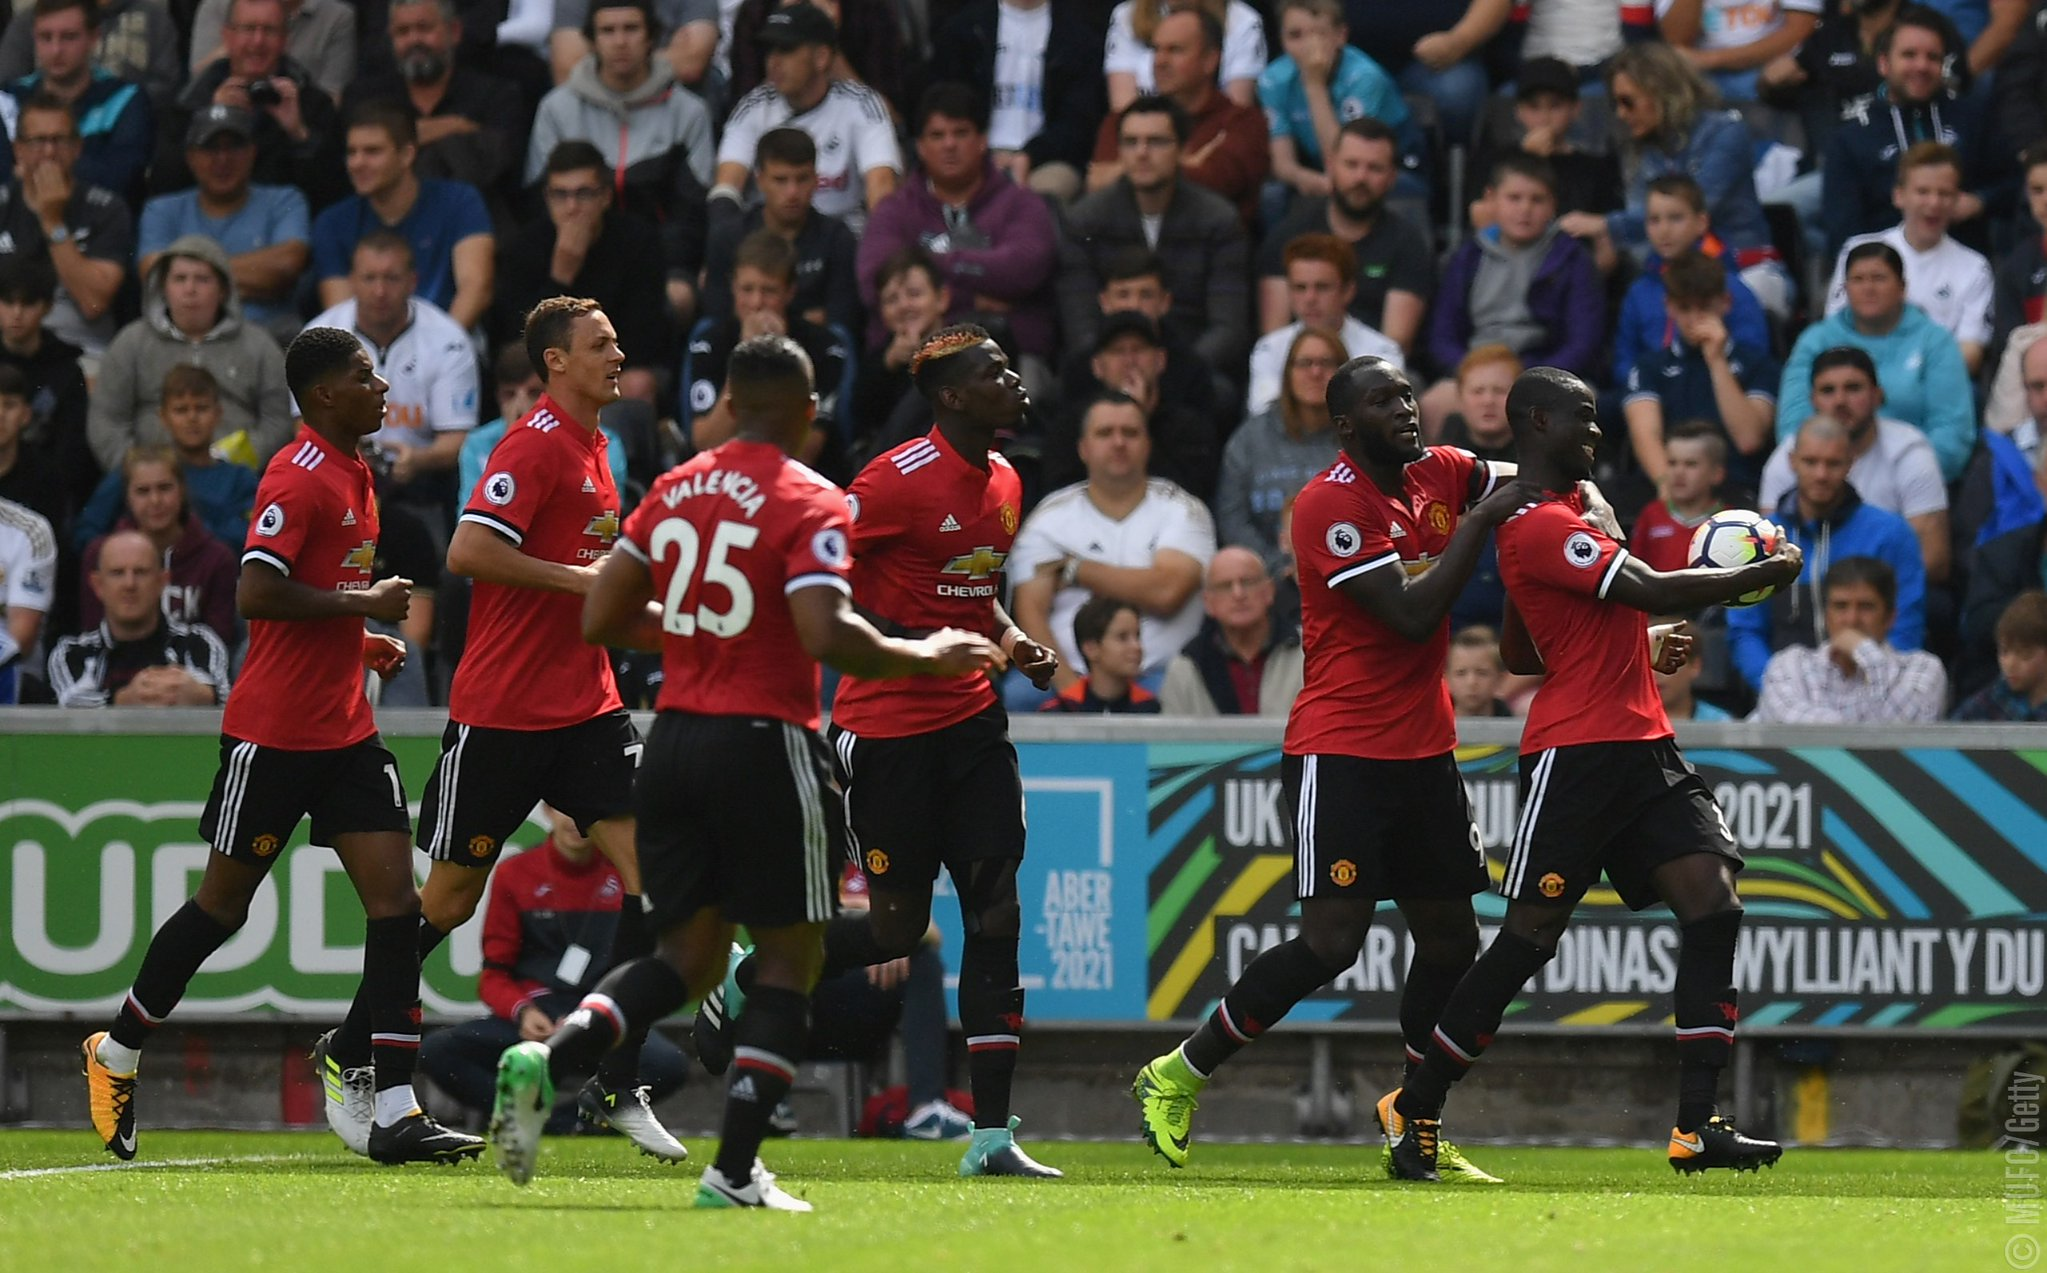 Bailly Scores Historic Goal As Lukaku, Pogba Fire Man United Past Swansea